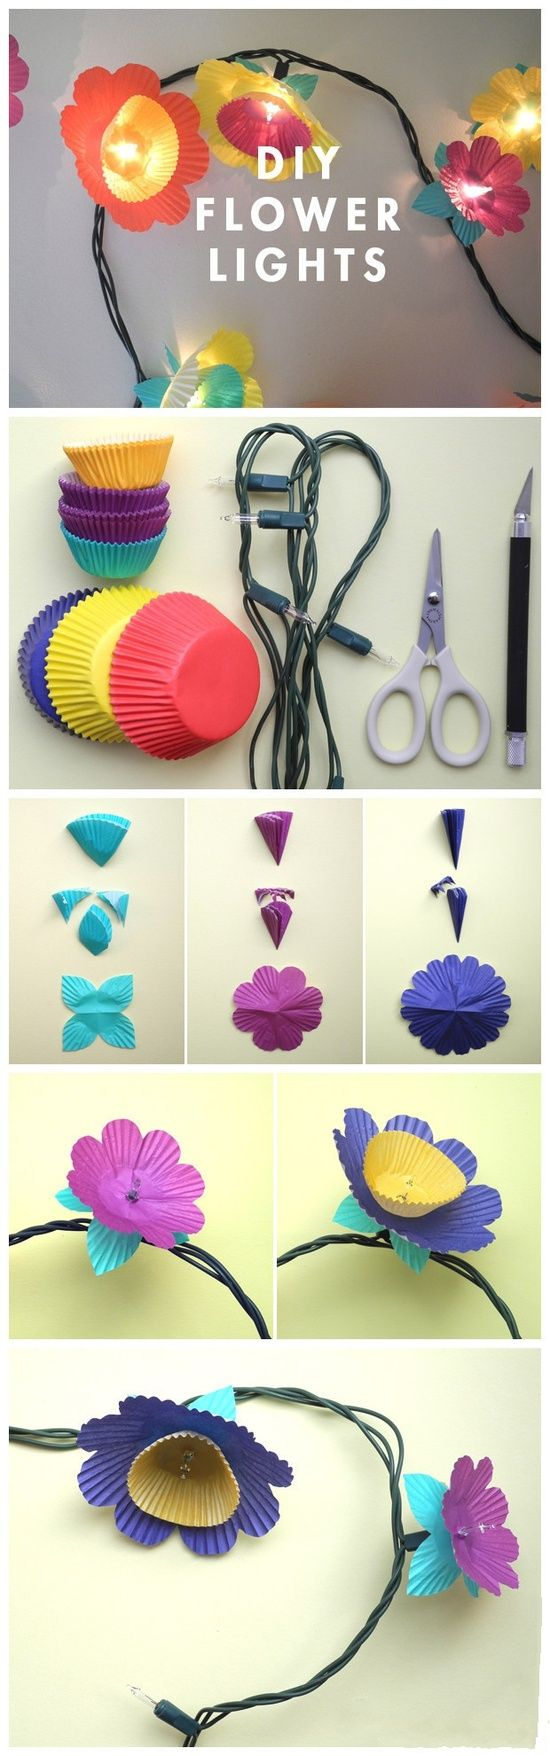 DIY flower lights. Would be cute for Anna's room